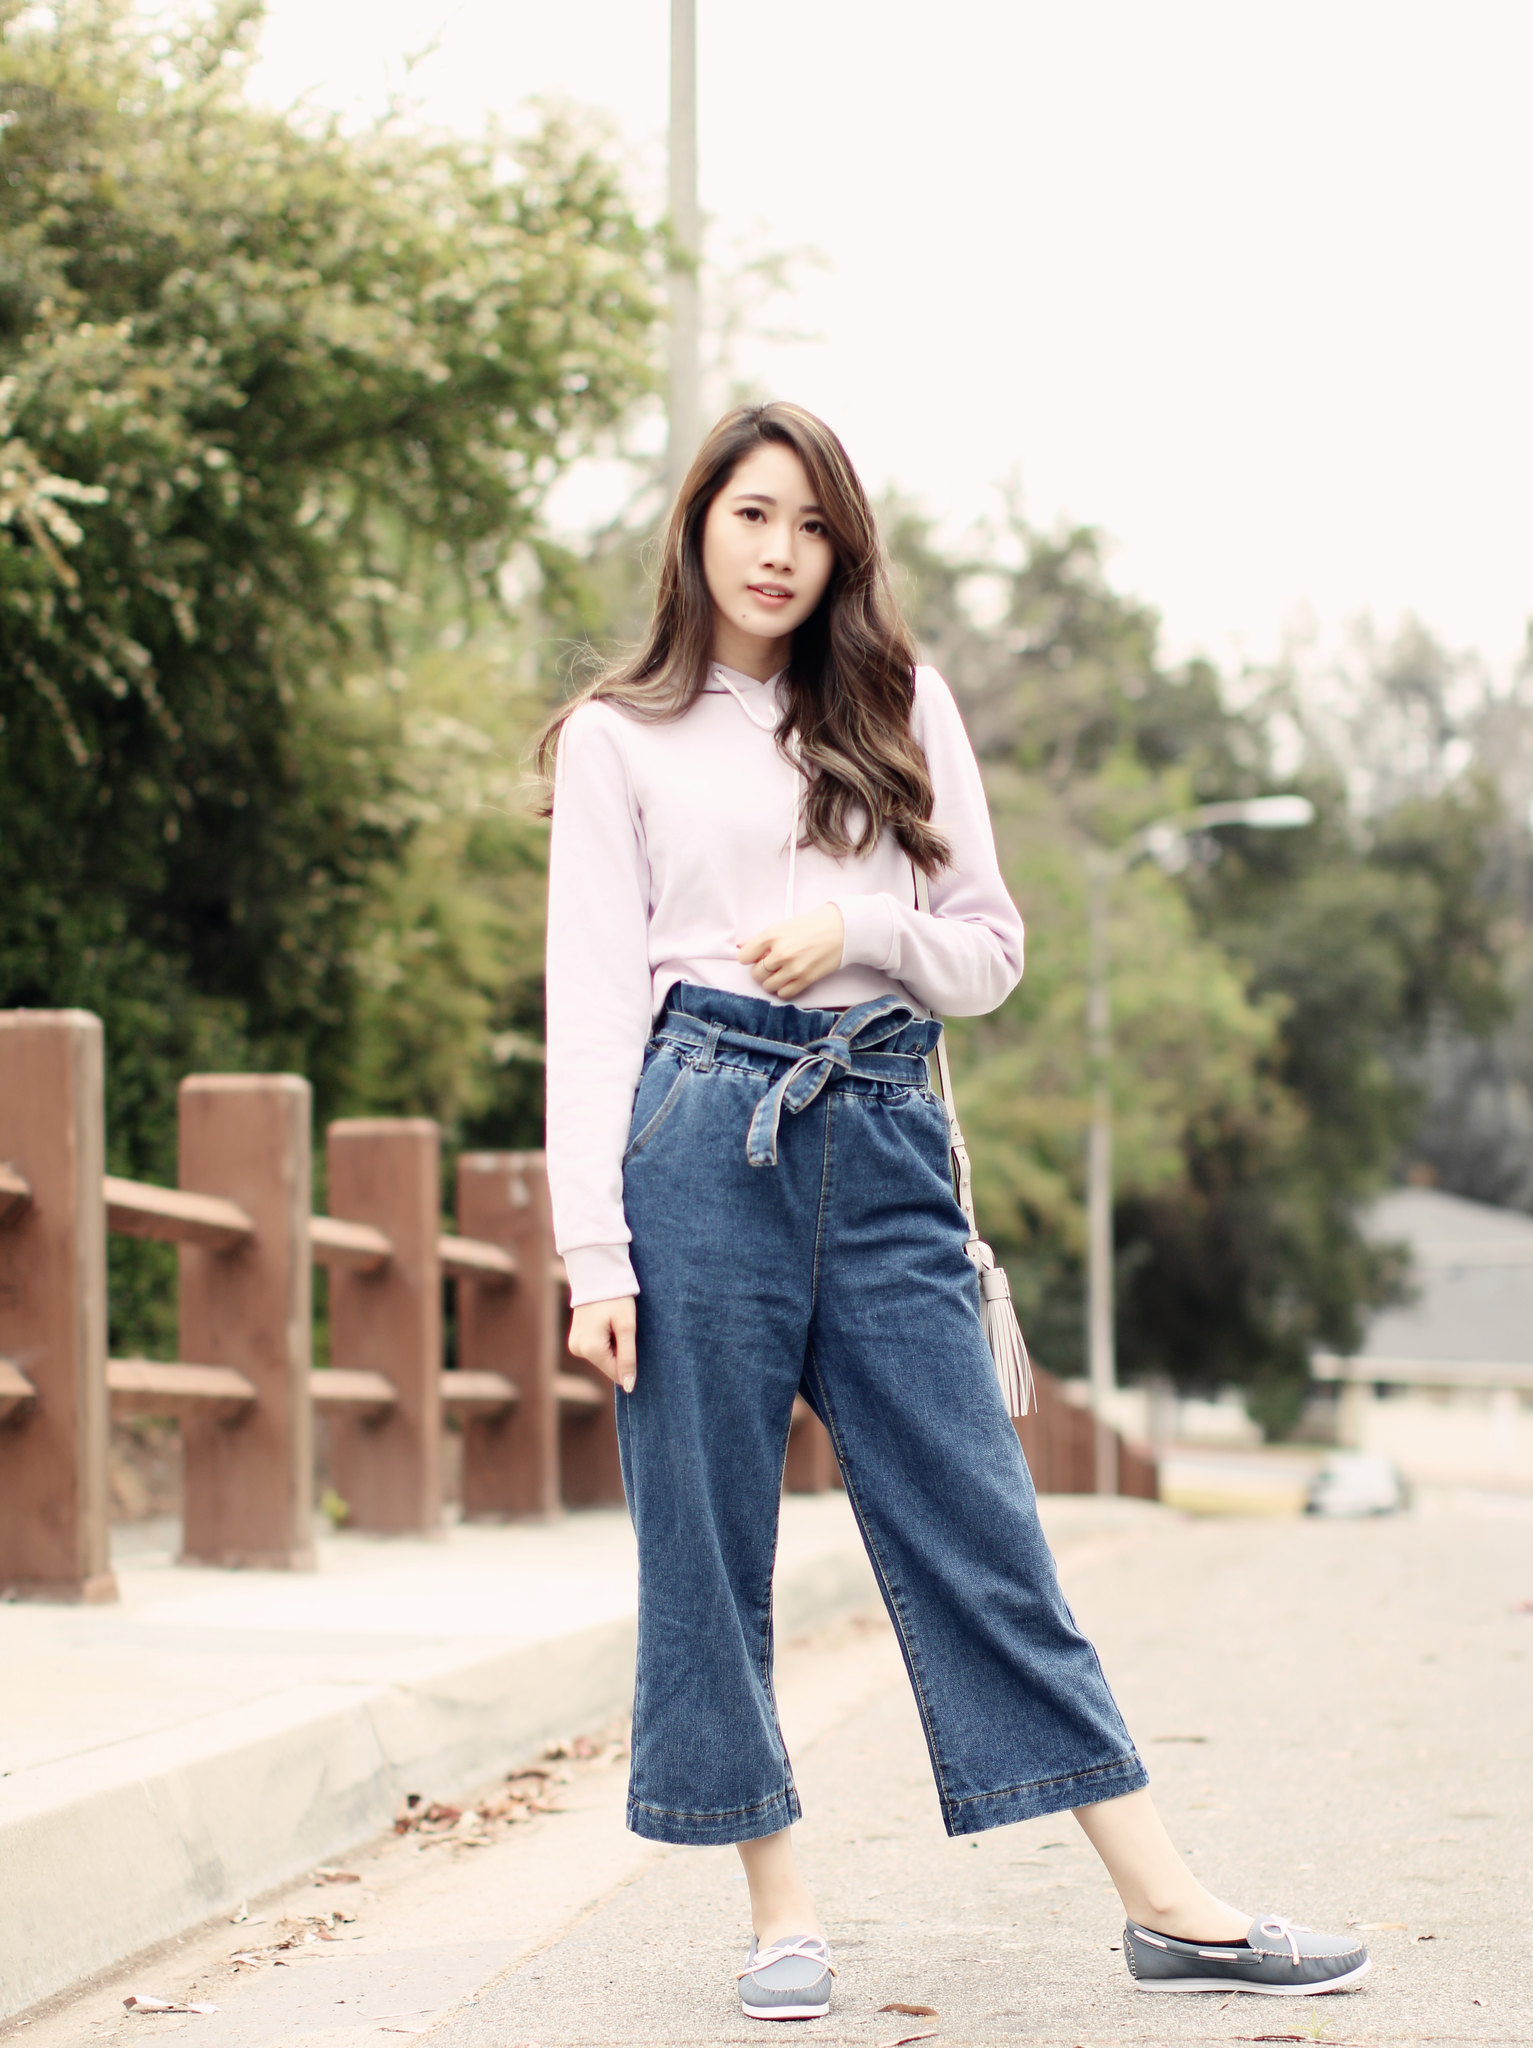 5054-ootd-fashion-style-outfitoftheday-wiwt-streetstyle-zara-f21xme-denim-thrifted-guess-koreanfashion-lookbook-elizabeeetht-clothestoyouuu